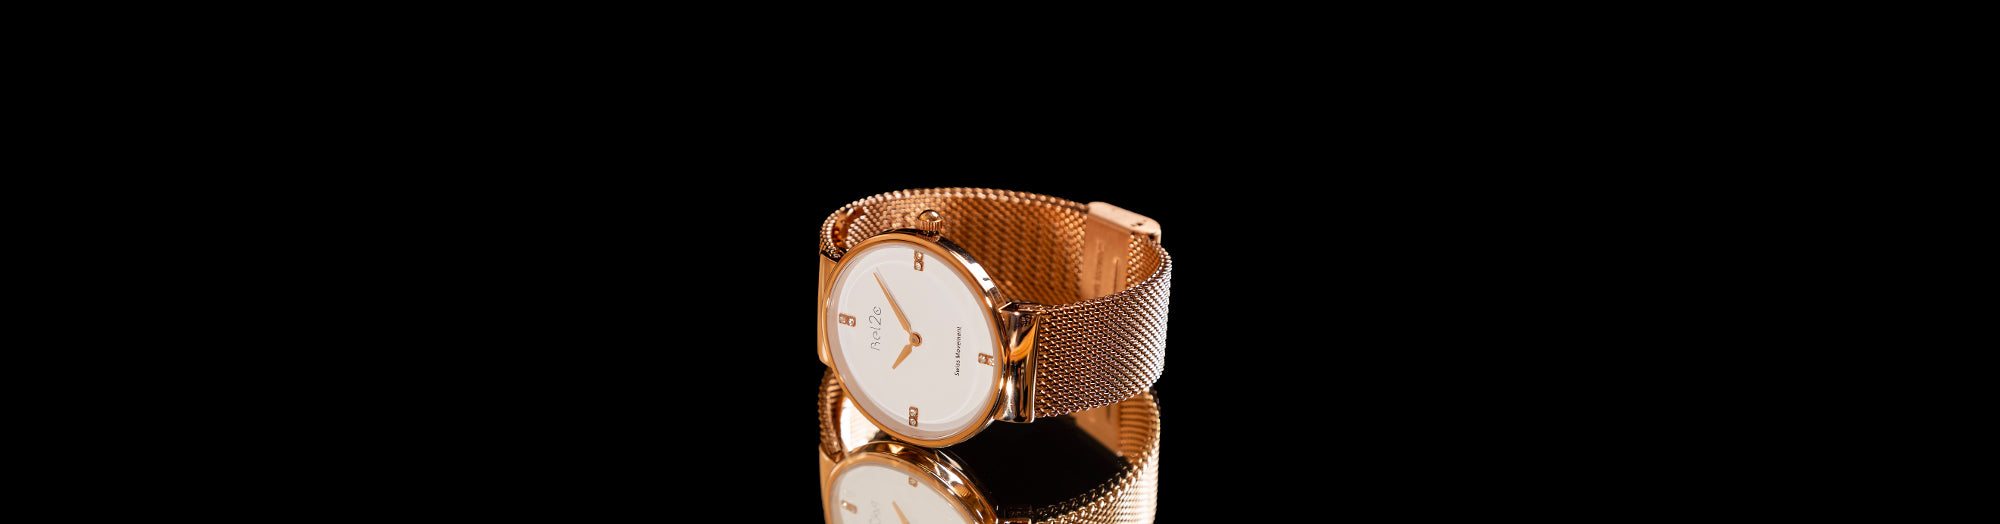 Ladies Watch with Rose Gold Case and White Dial